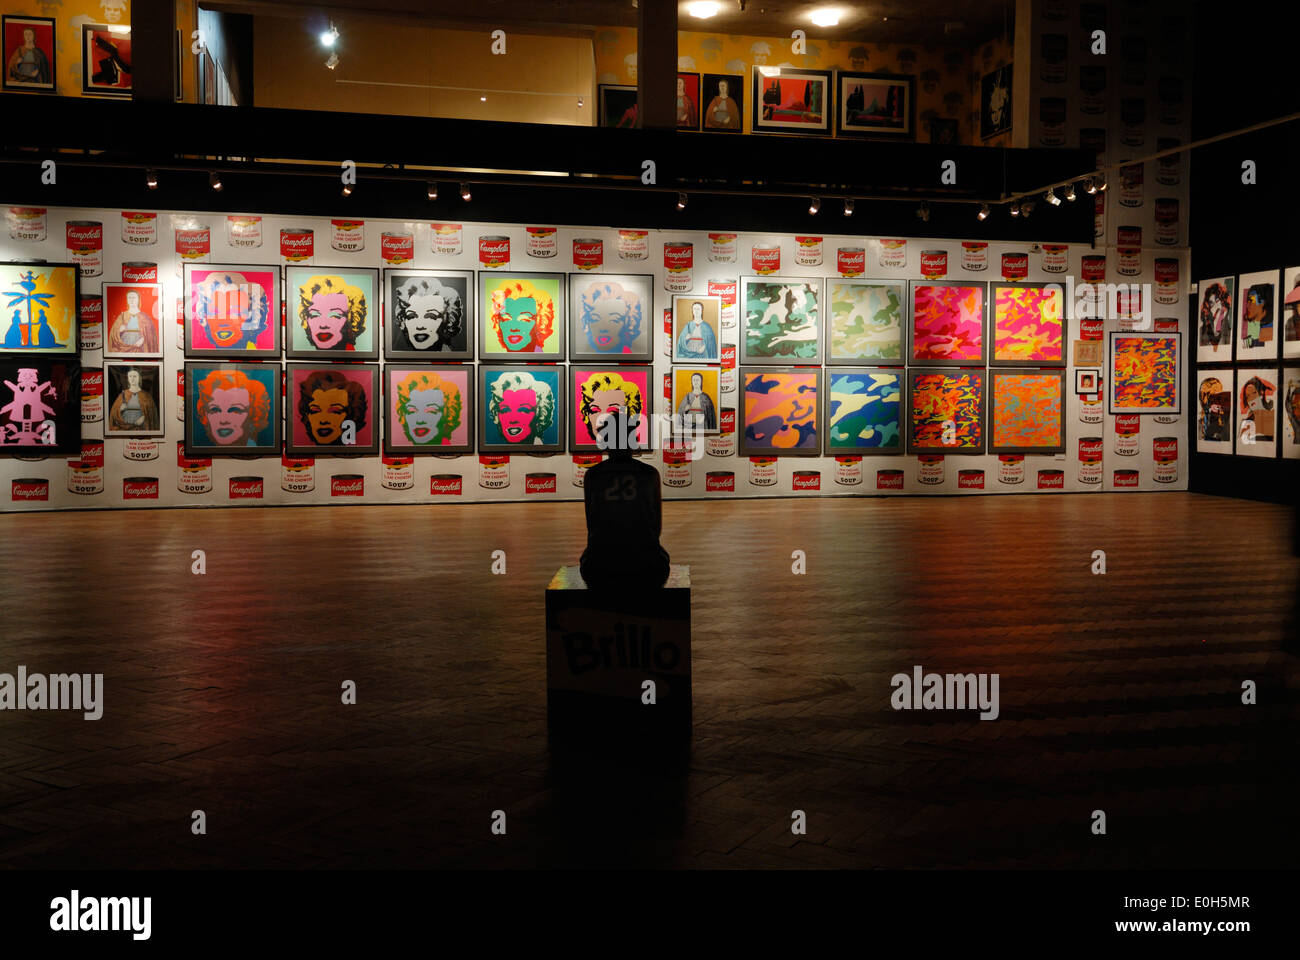 Marilyn Print Exhibits At Andy Warhol Museum Of Modern Art Stock